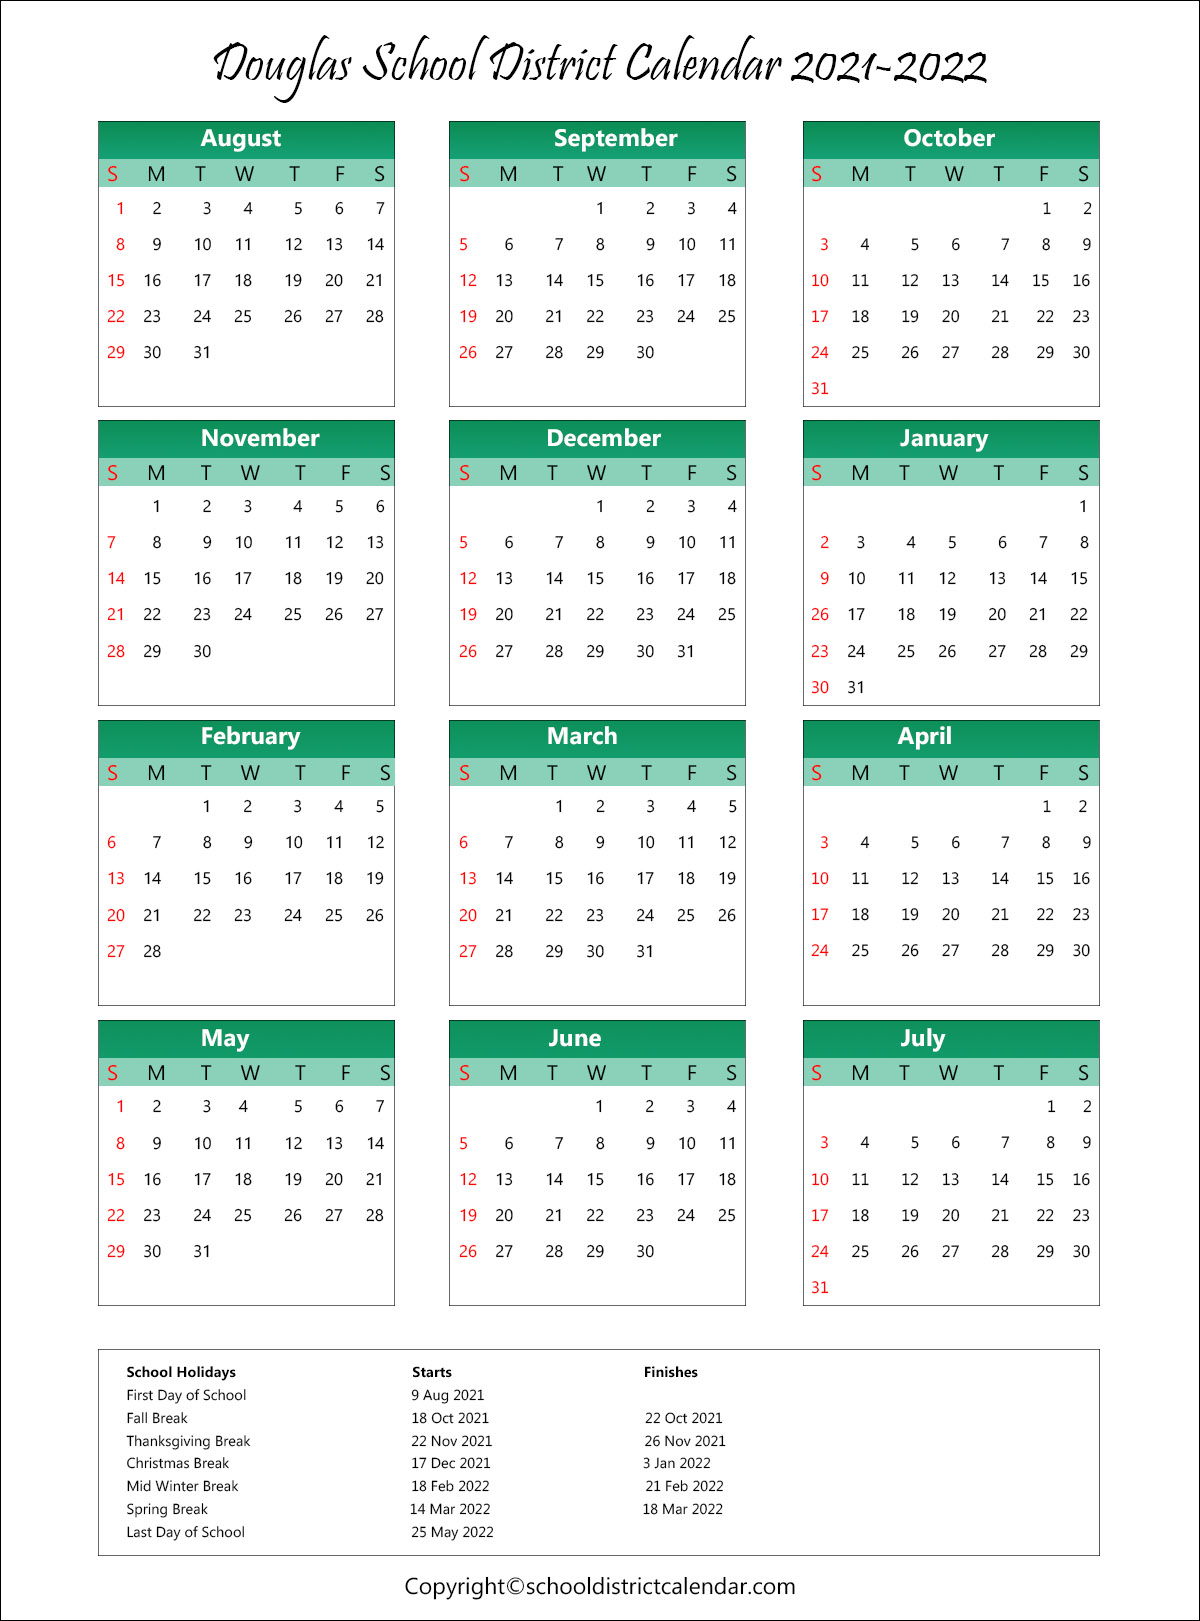 Douglas School District Calendar Holidays 2021 2022